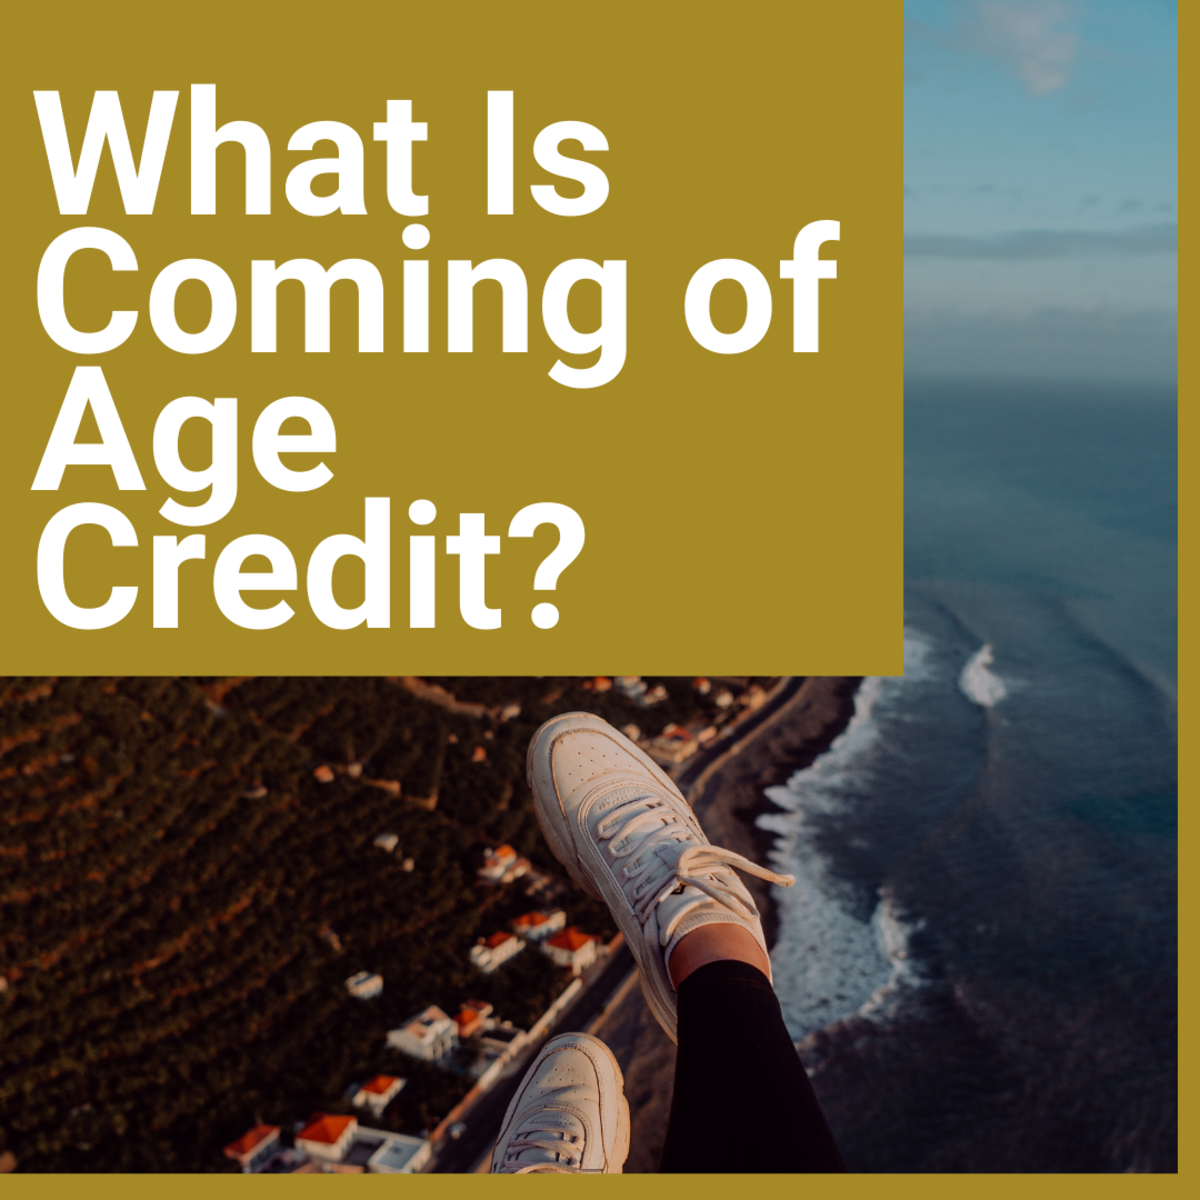 The Coming of Age Credit: A Free Tuition Alternative